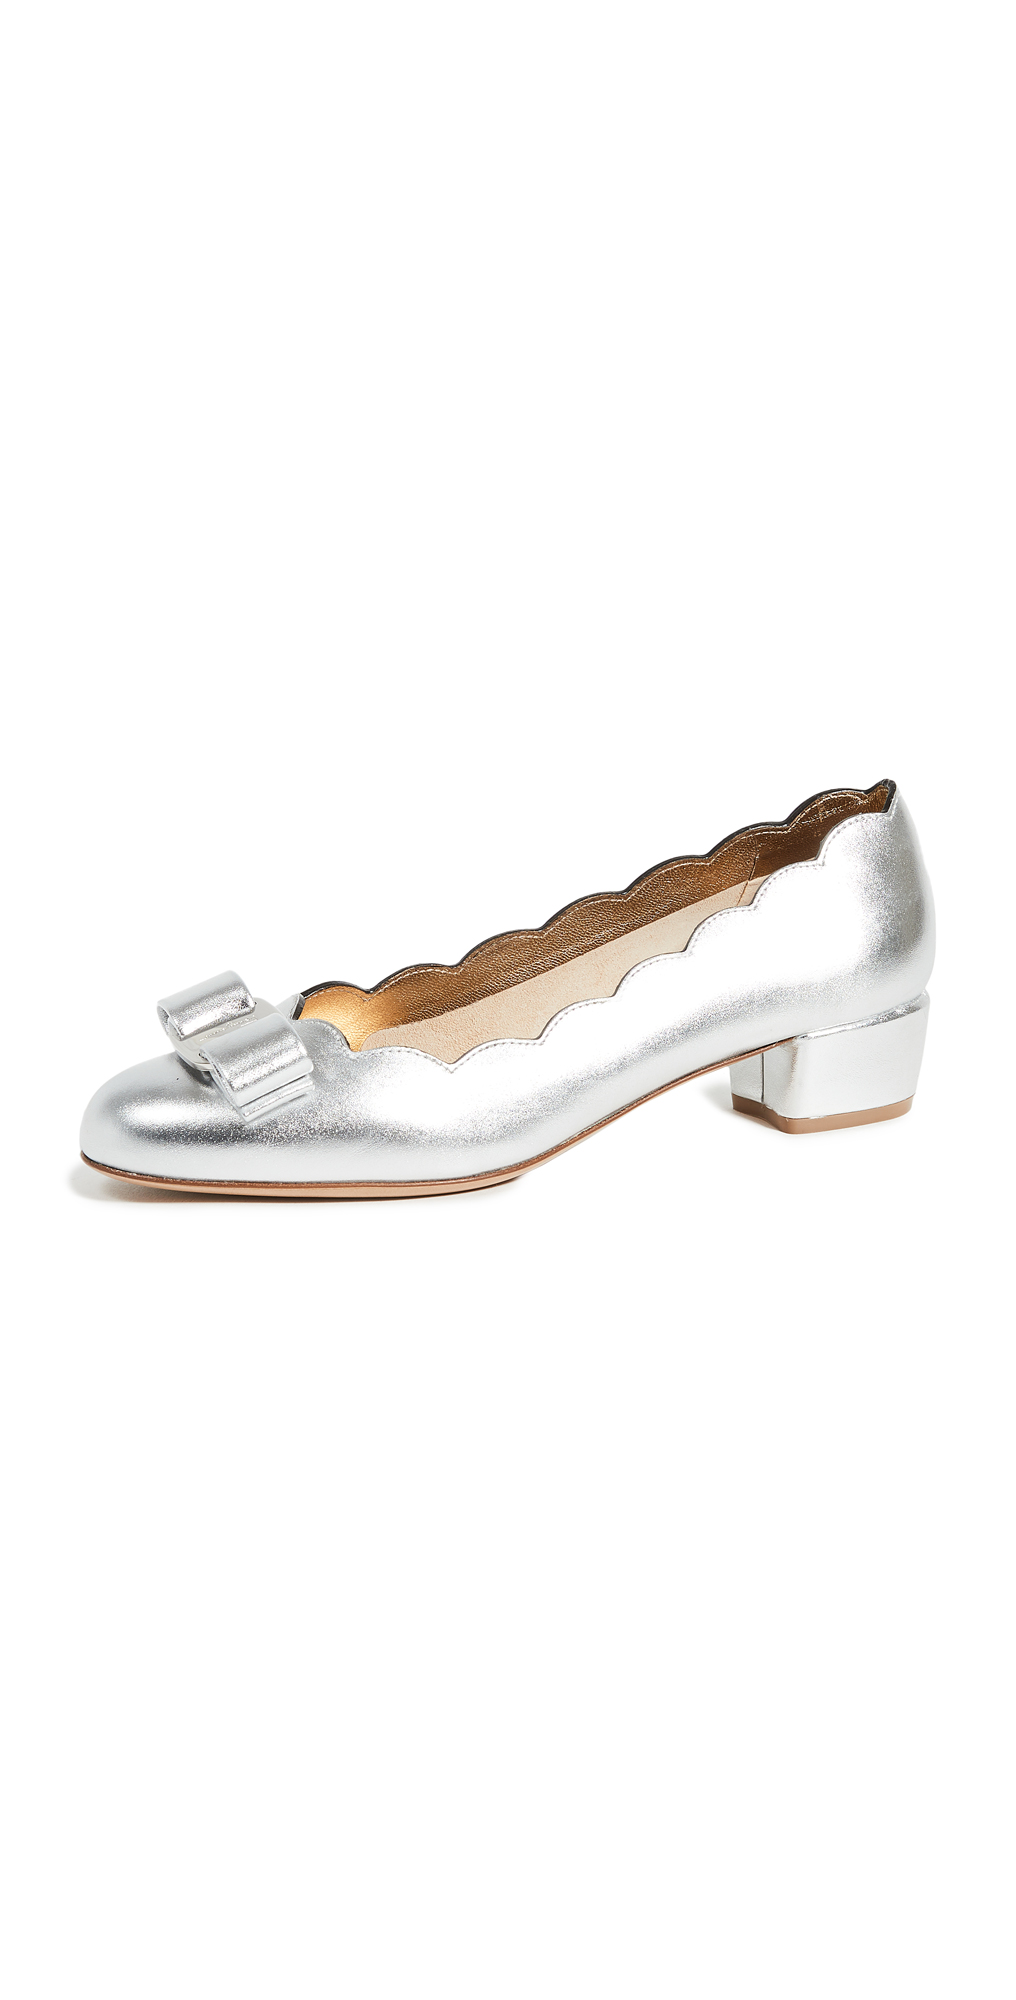 Salvatore Ferragamo Vara Shell Pumps